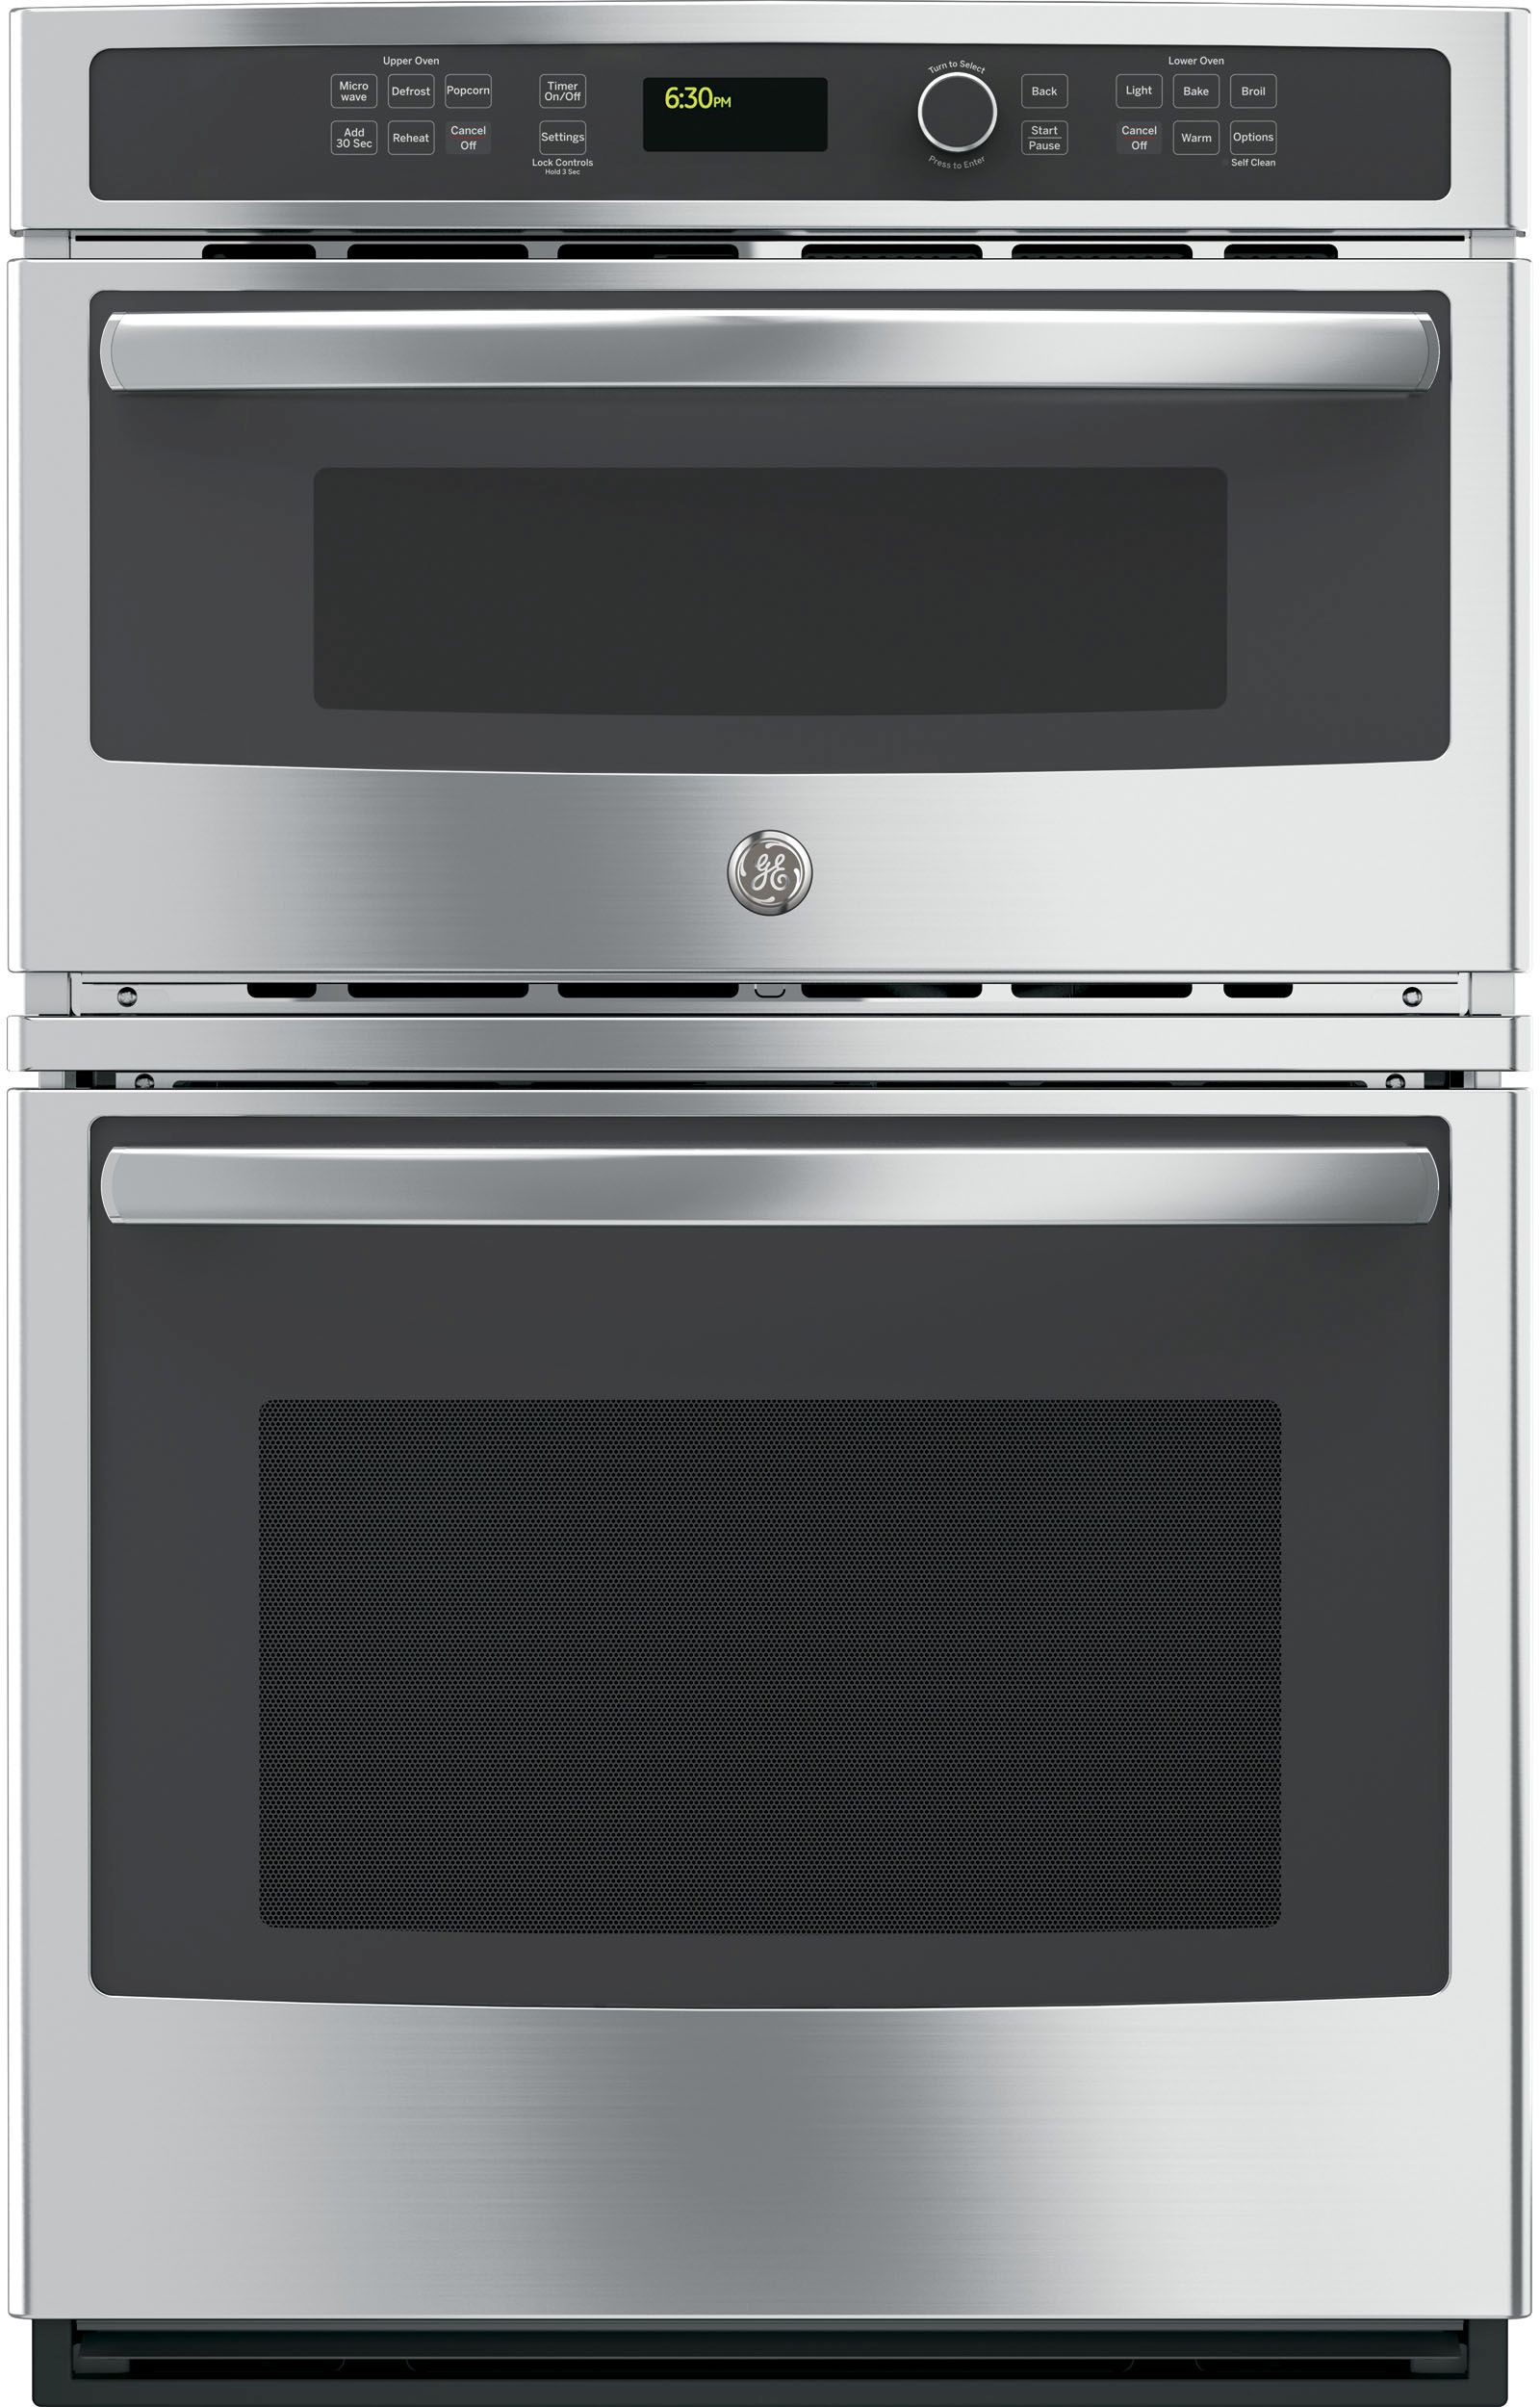 Ge 27 Electric Built In Combination Microwave Oven Stainless Steel Jk3800shss